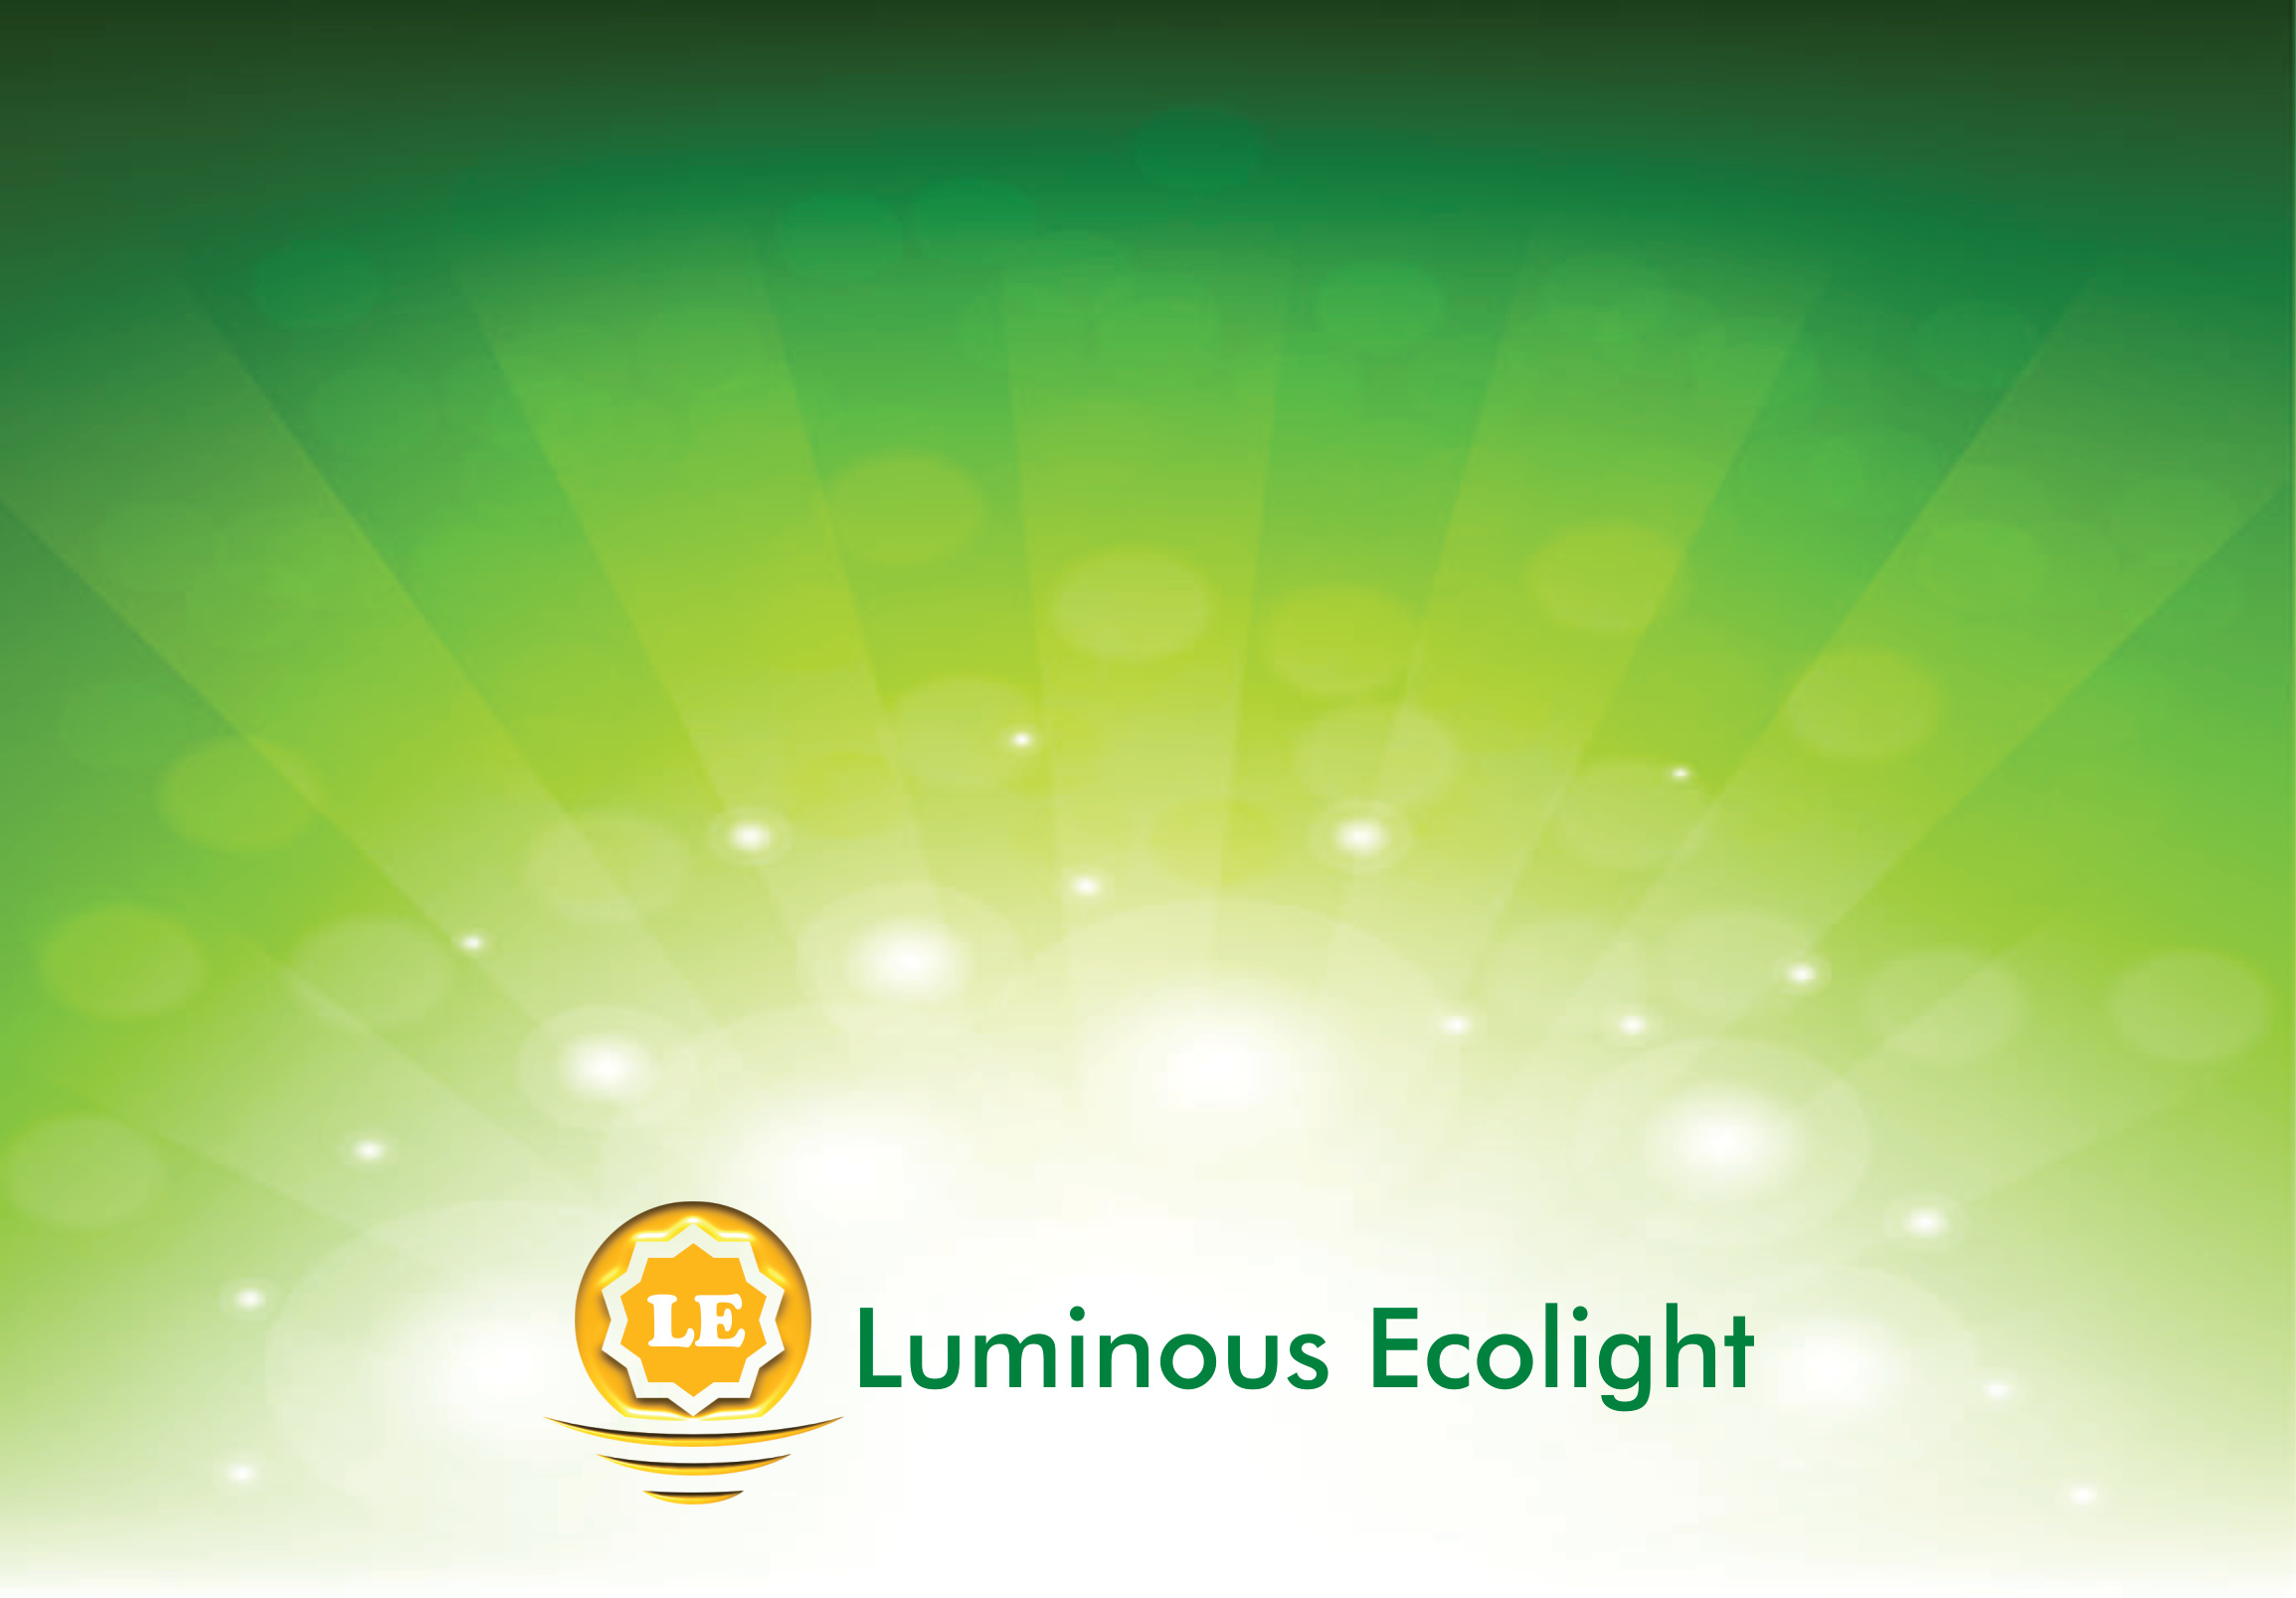 Cliente - Luminous Ecolight